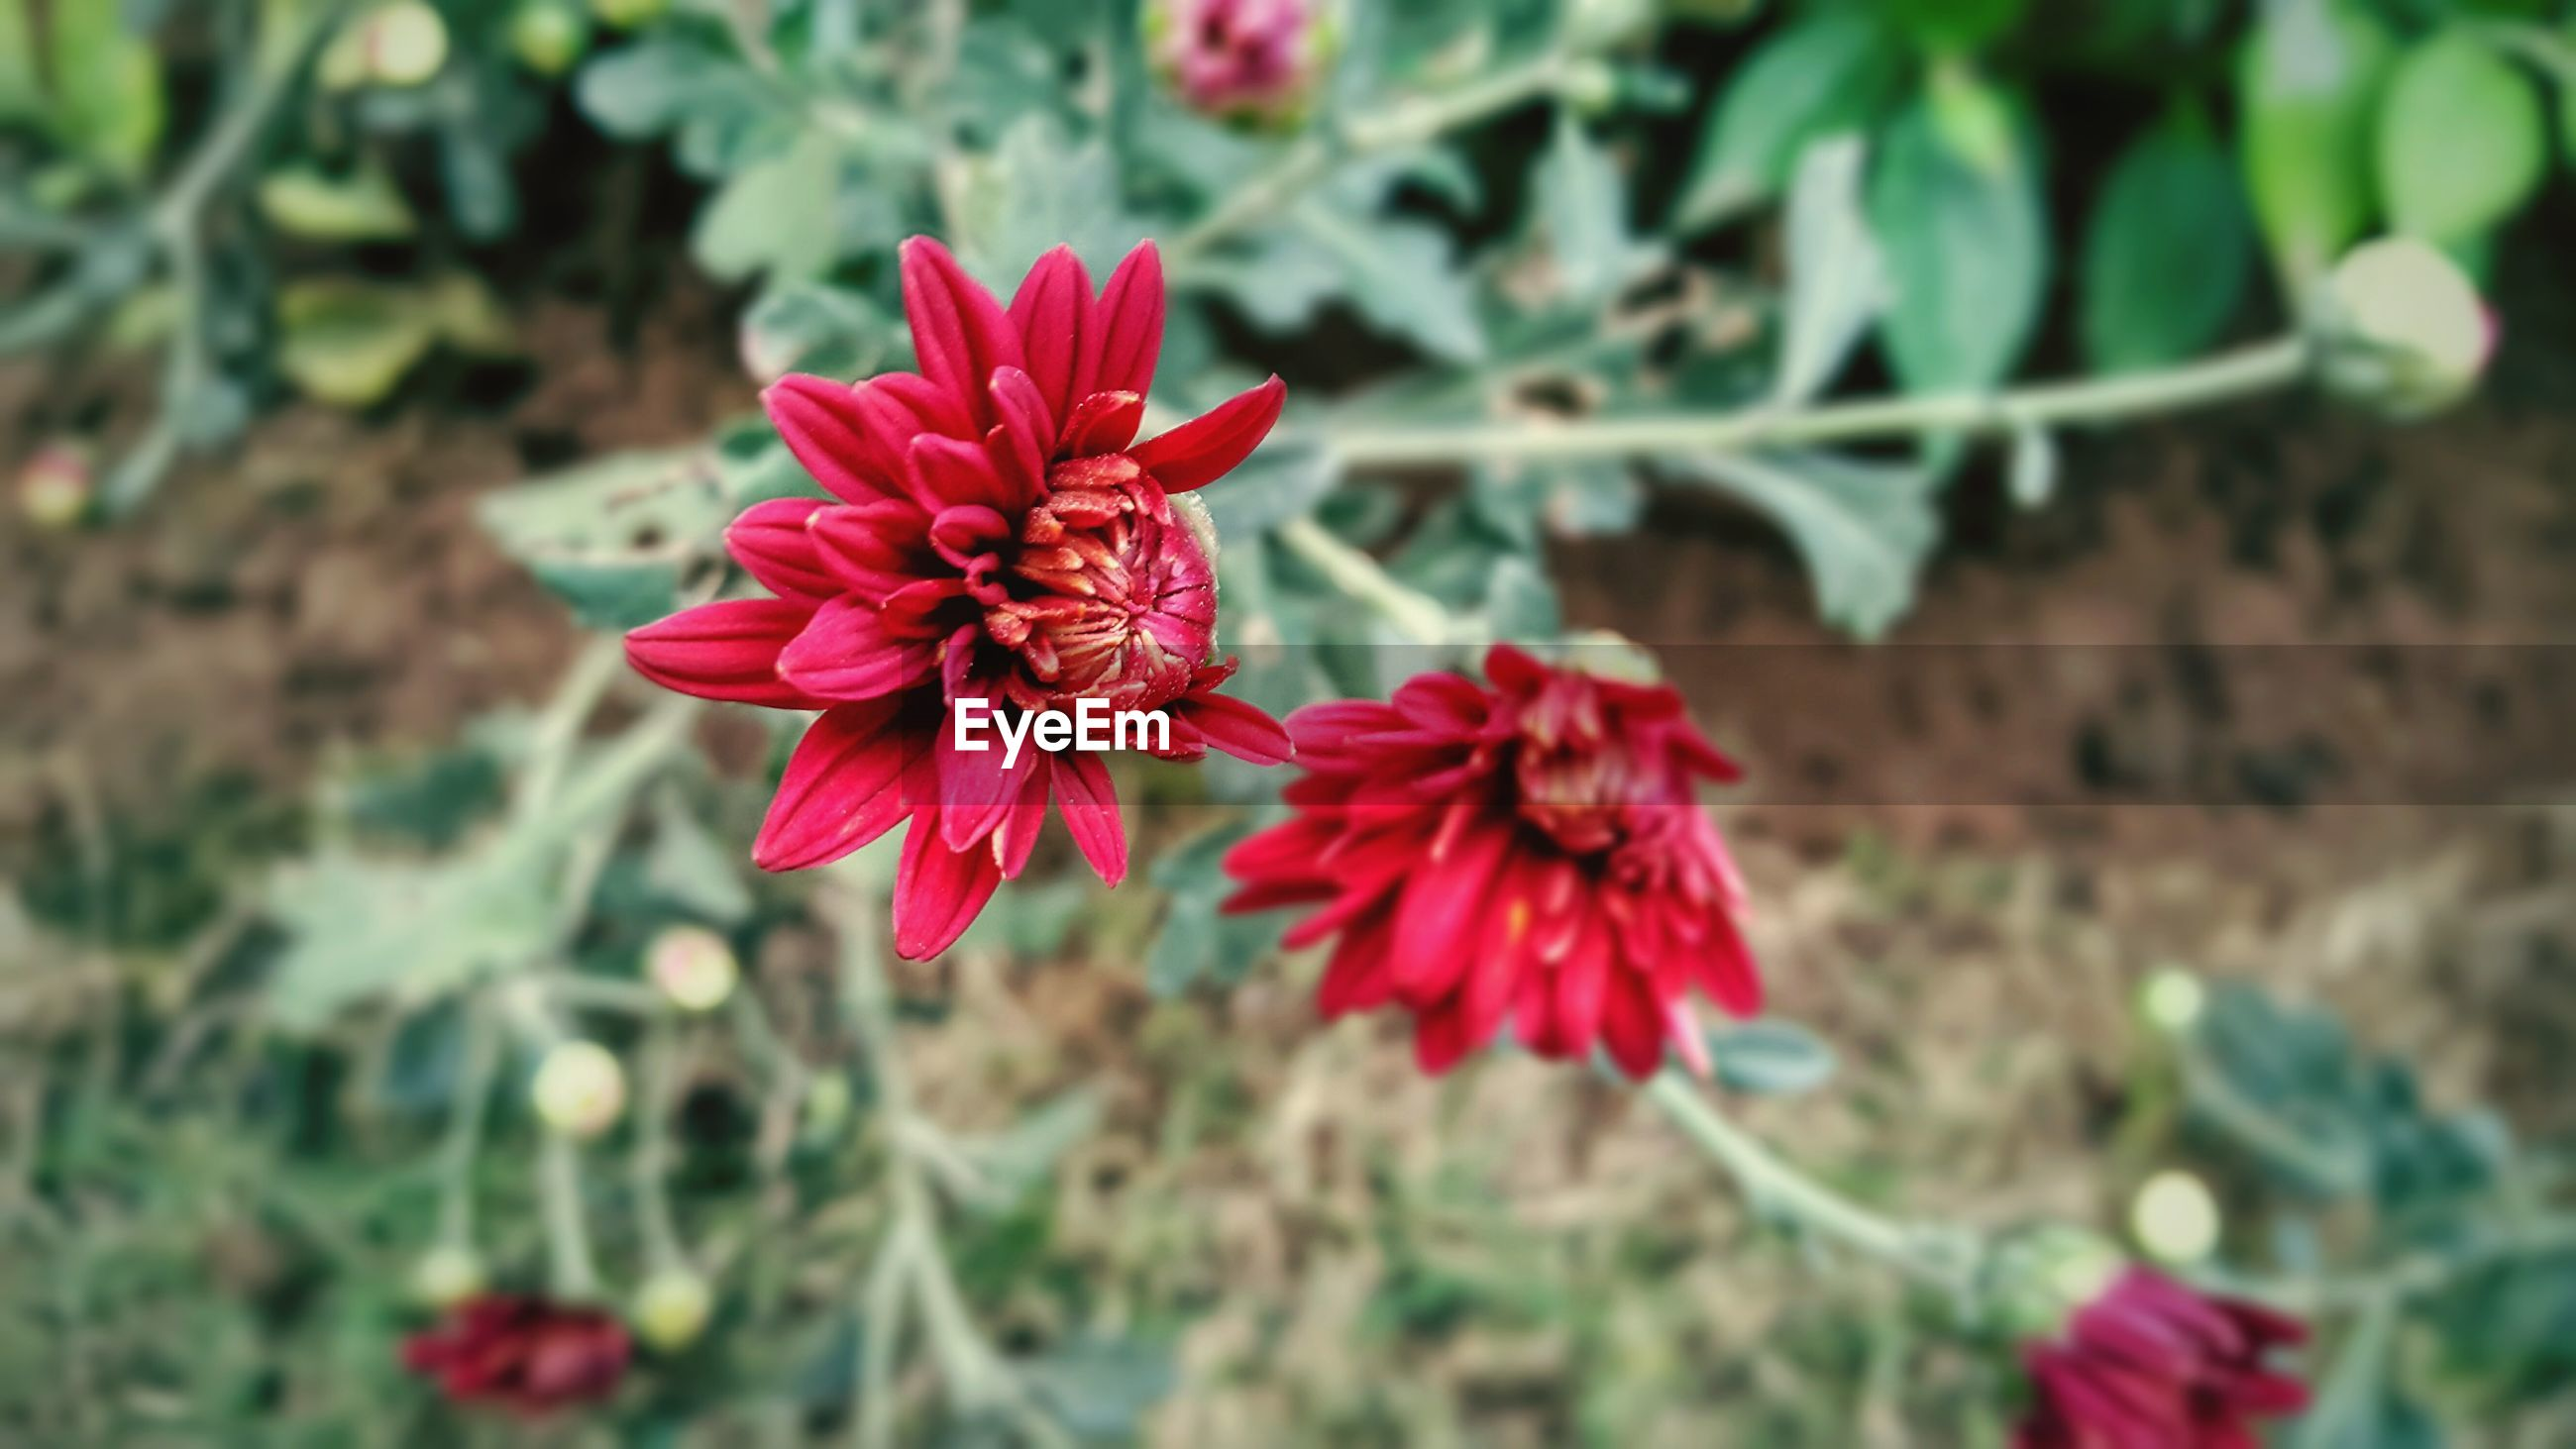 CLOSE-UP OF RED FLOWER BLOOMING IN PLANT